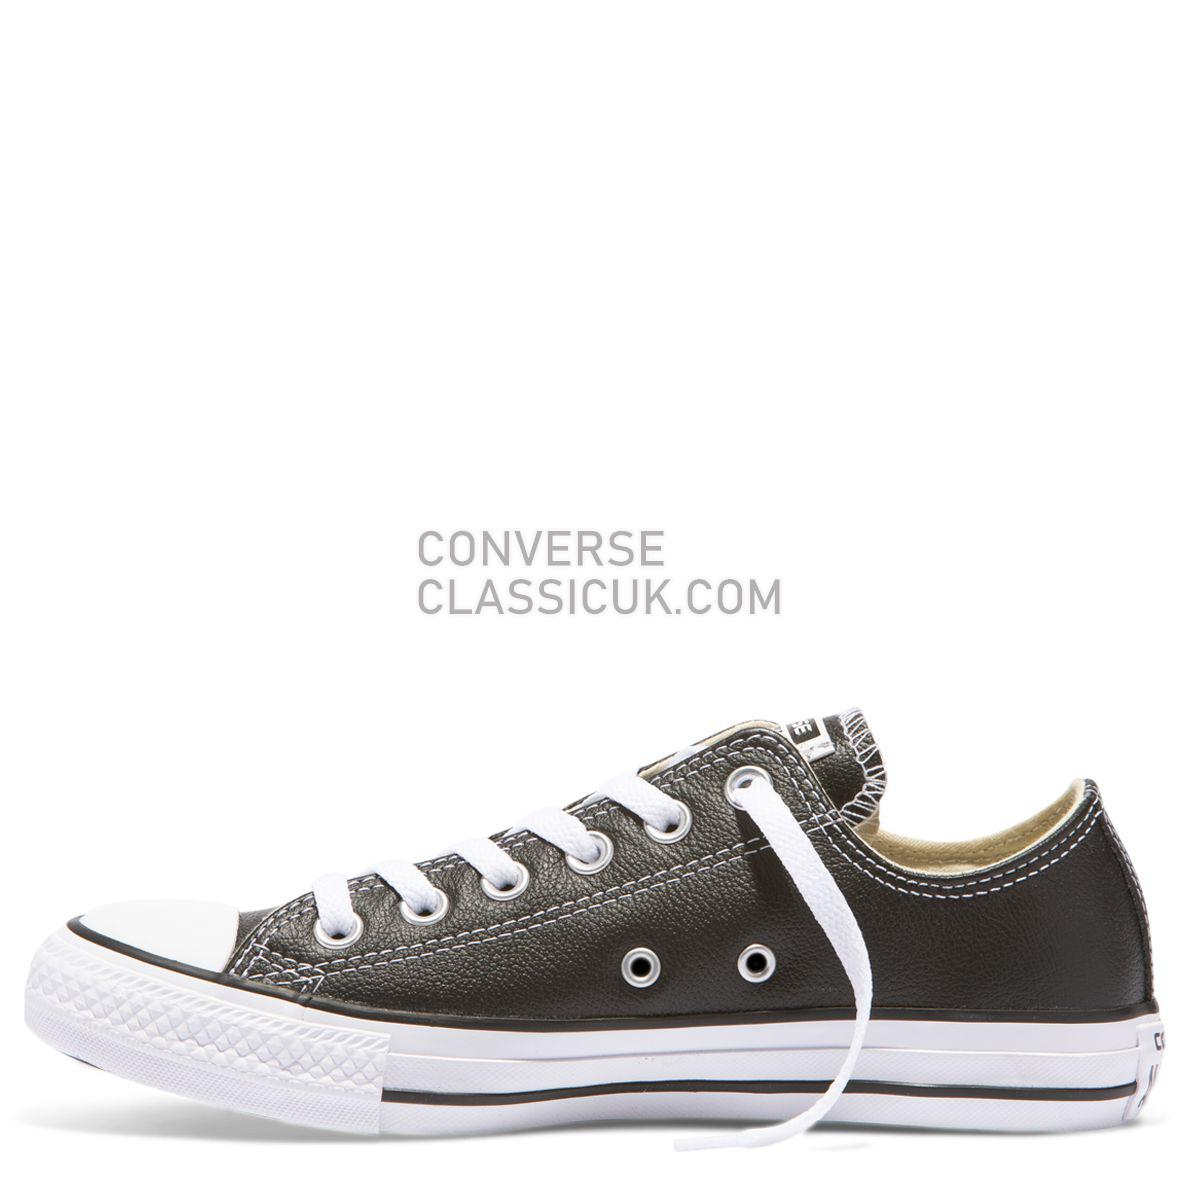 Converse Chuck Taylor All Star Leather Low Top Black Mens Womens Unisex 132174 Black Shoes